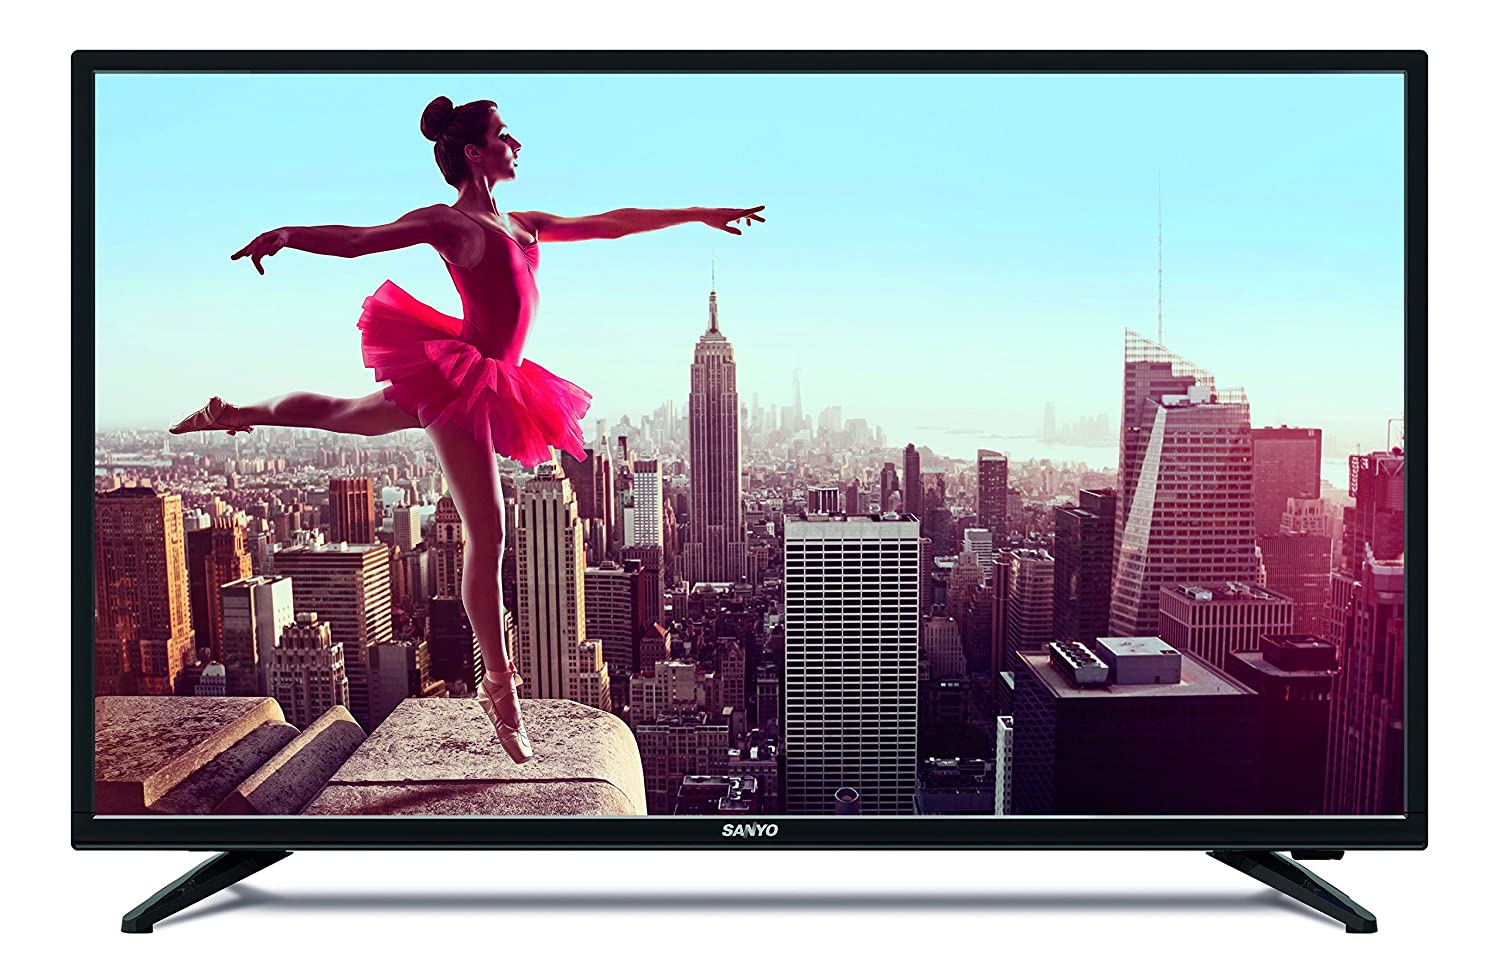 Upto 40% Off On Televisons By Amazon | Sanyo 81 cm (32 inches) XT-32S7000H HD Ready LED TV (Black) @ Rs.12,990